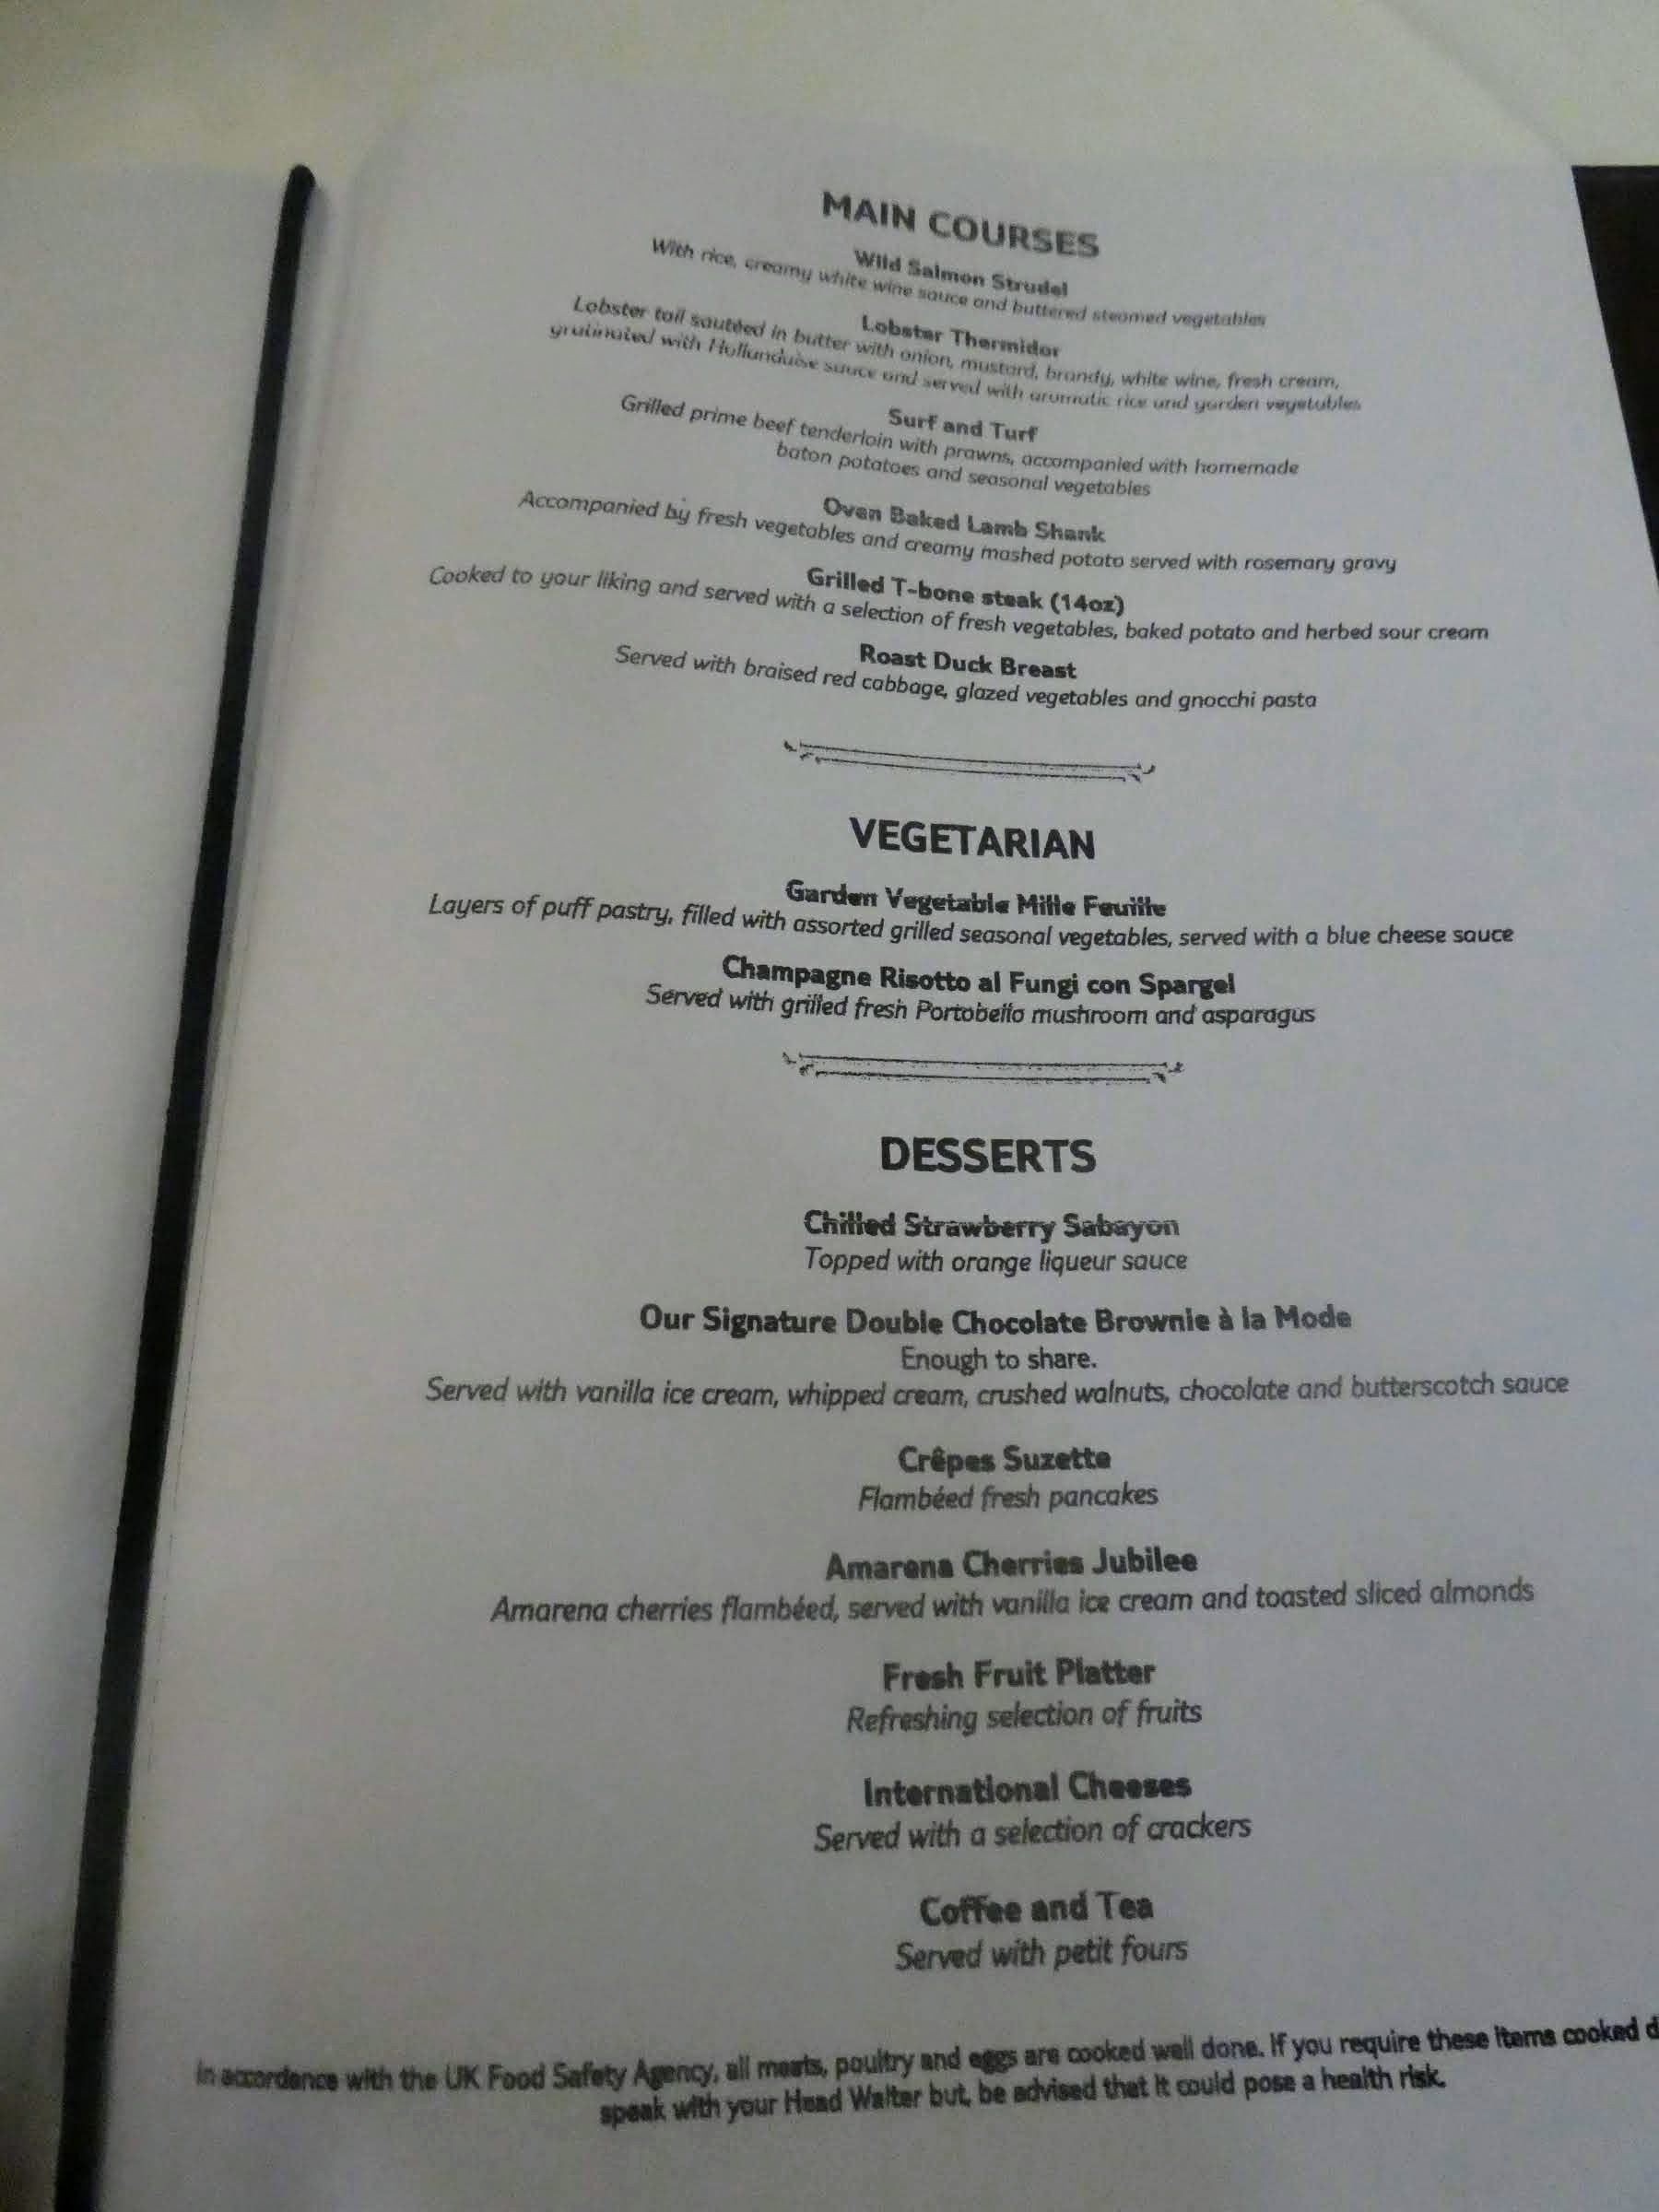 Eating Gluten Free on Marella Cruises - Sirocco's menu